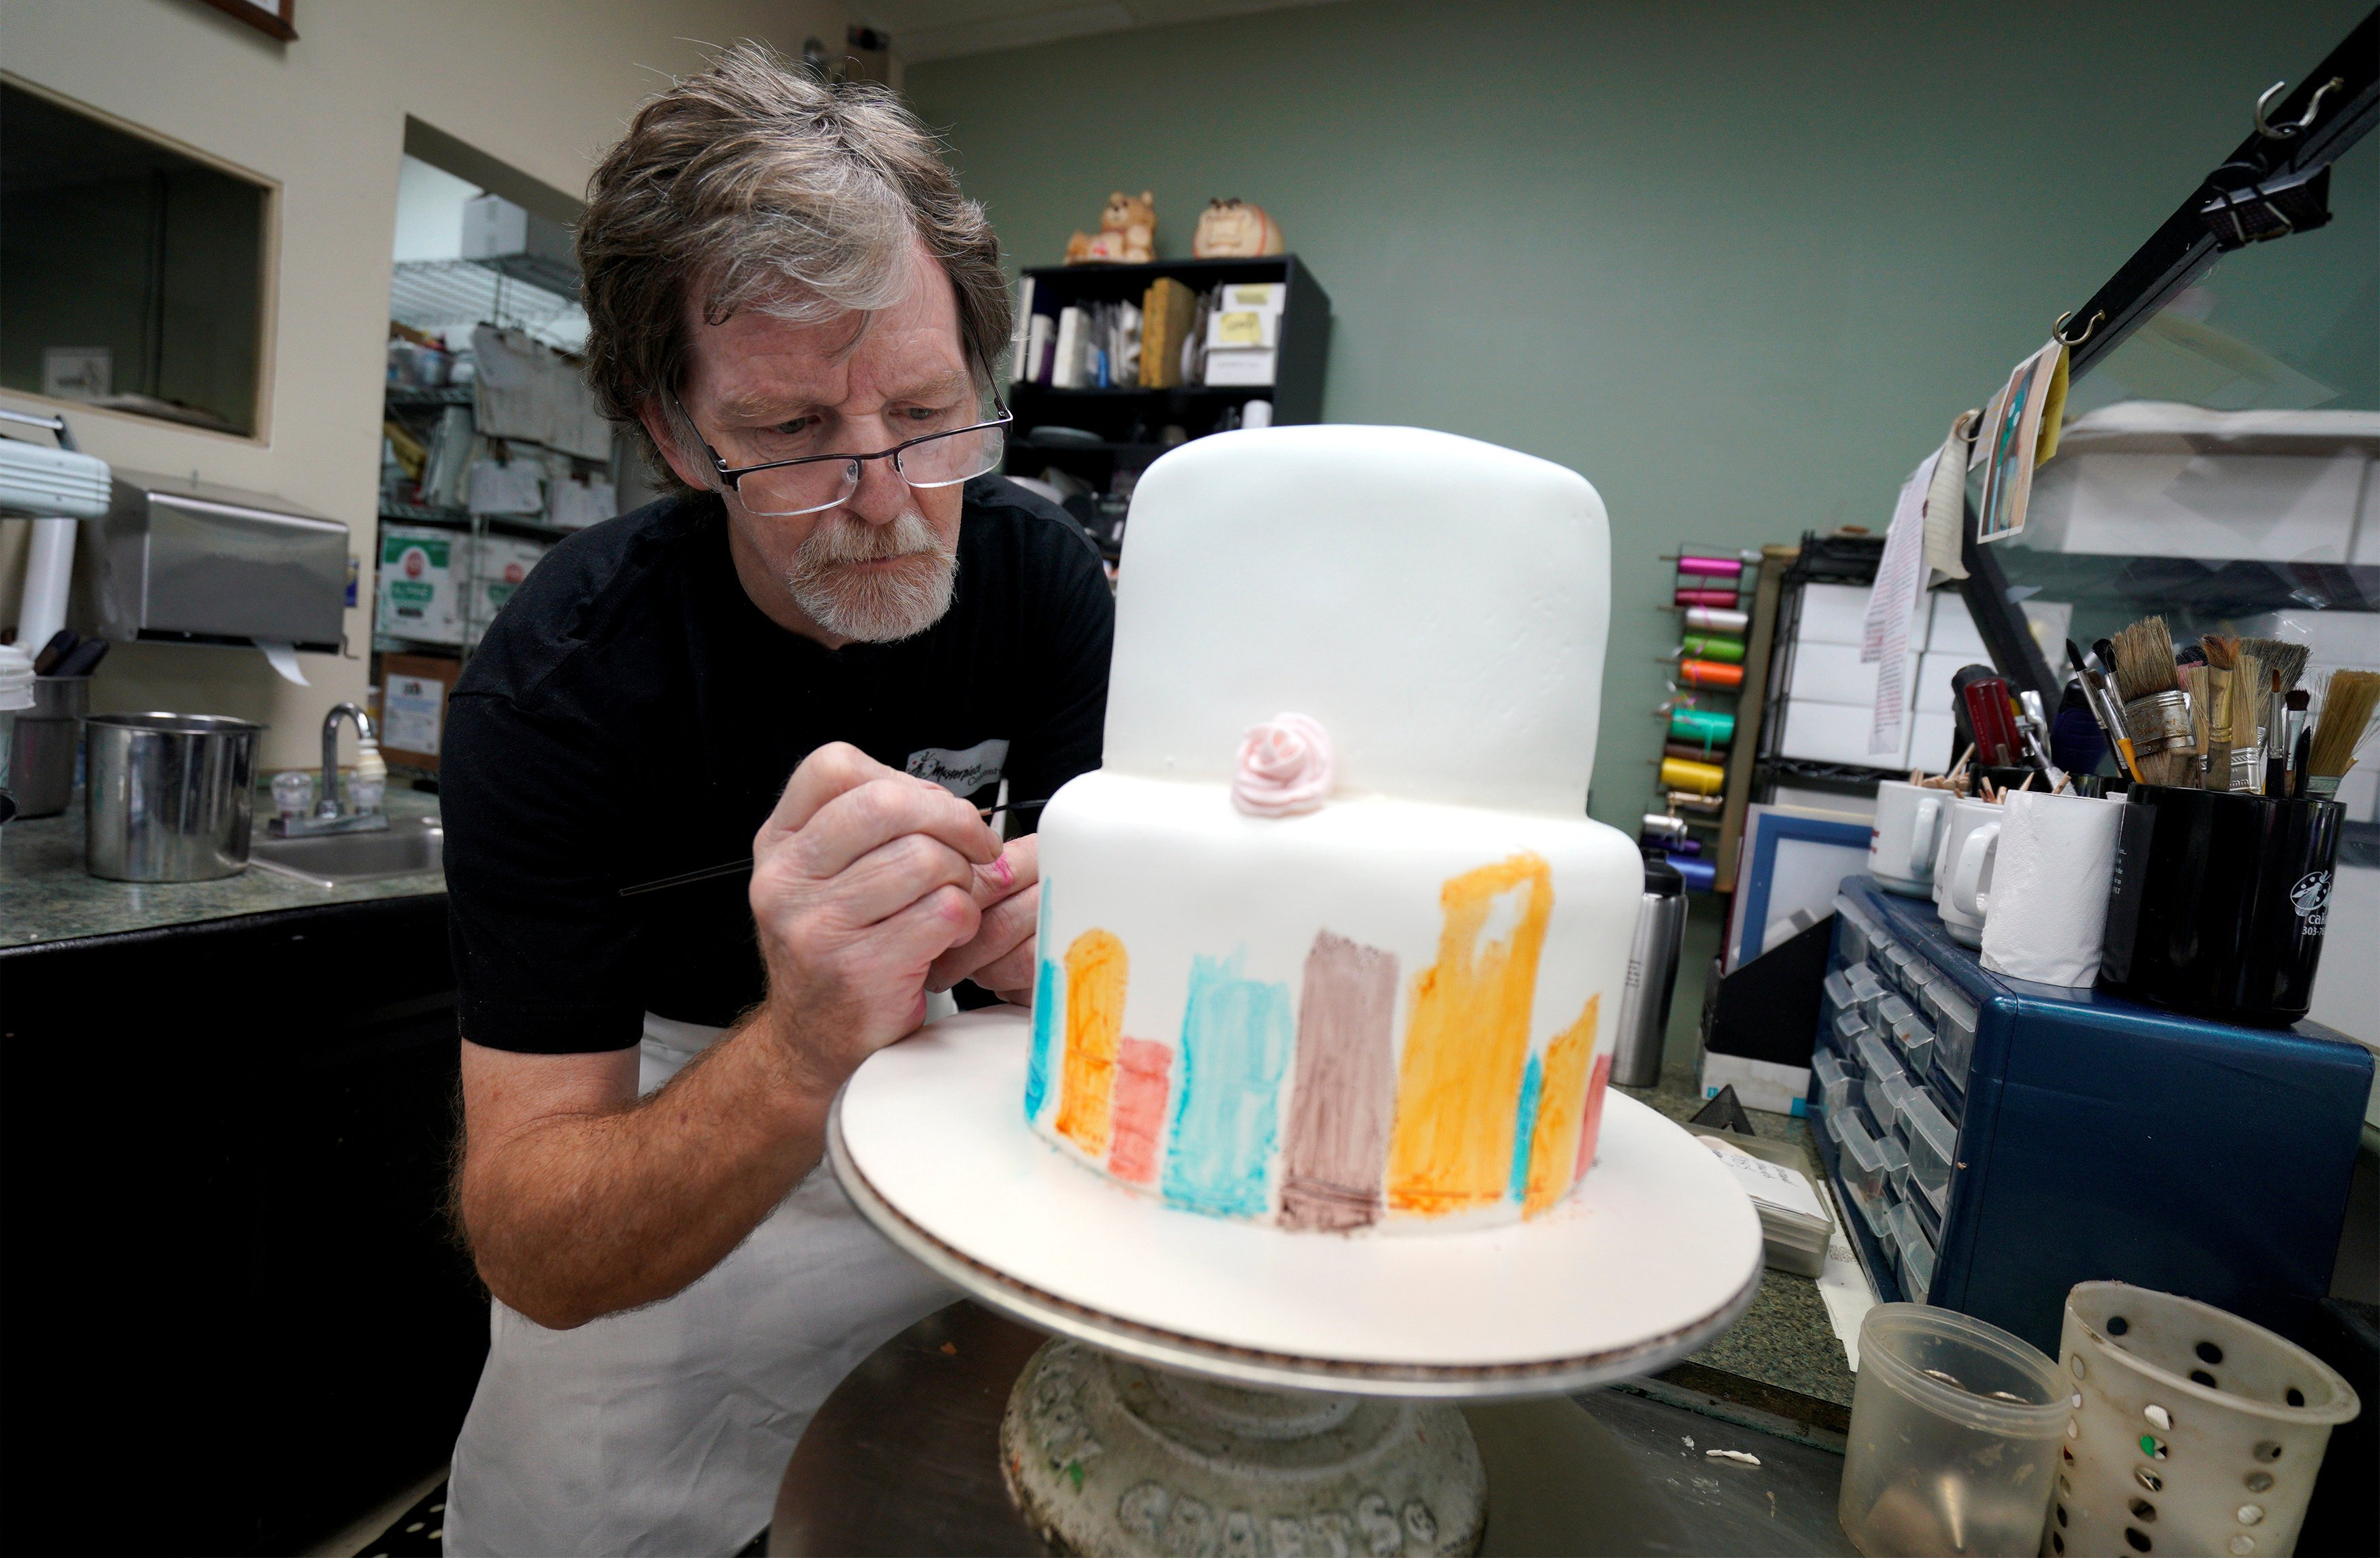 Supreme Court Hears Why Baker Refused To Make A Wedding Cake For Gay